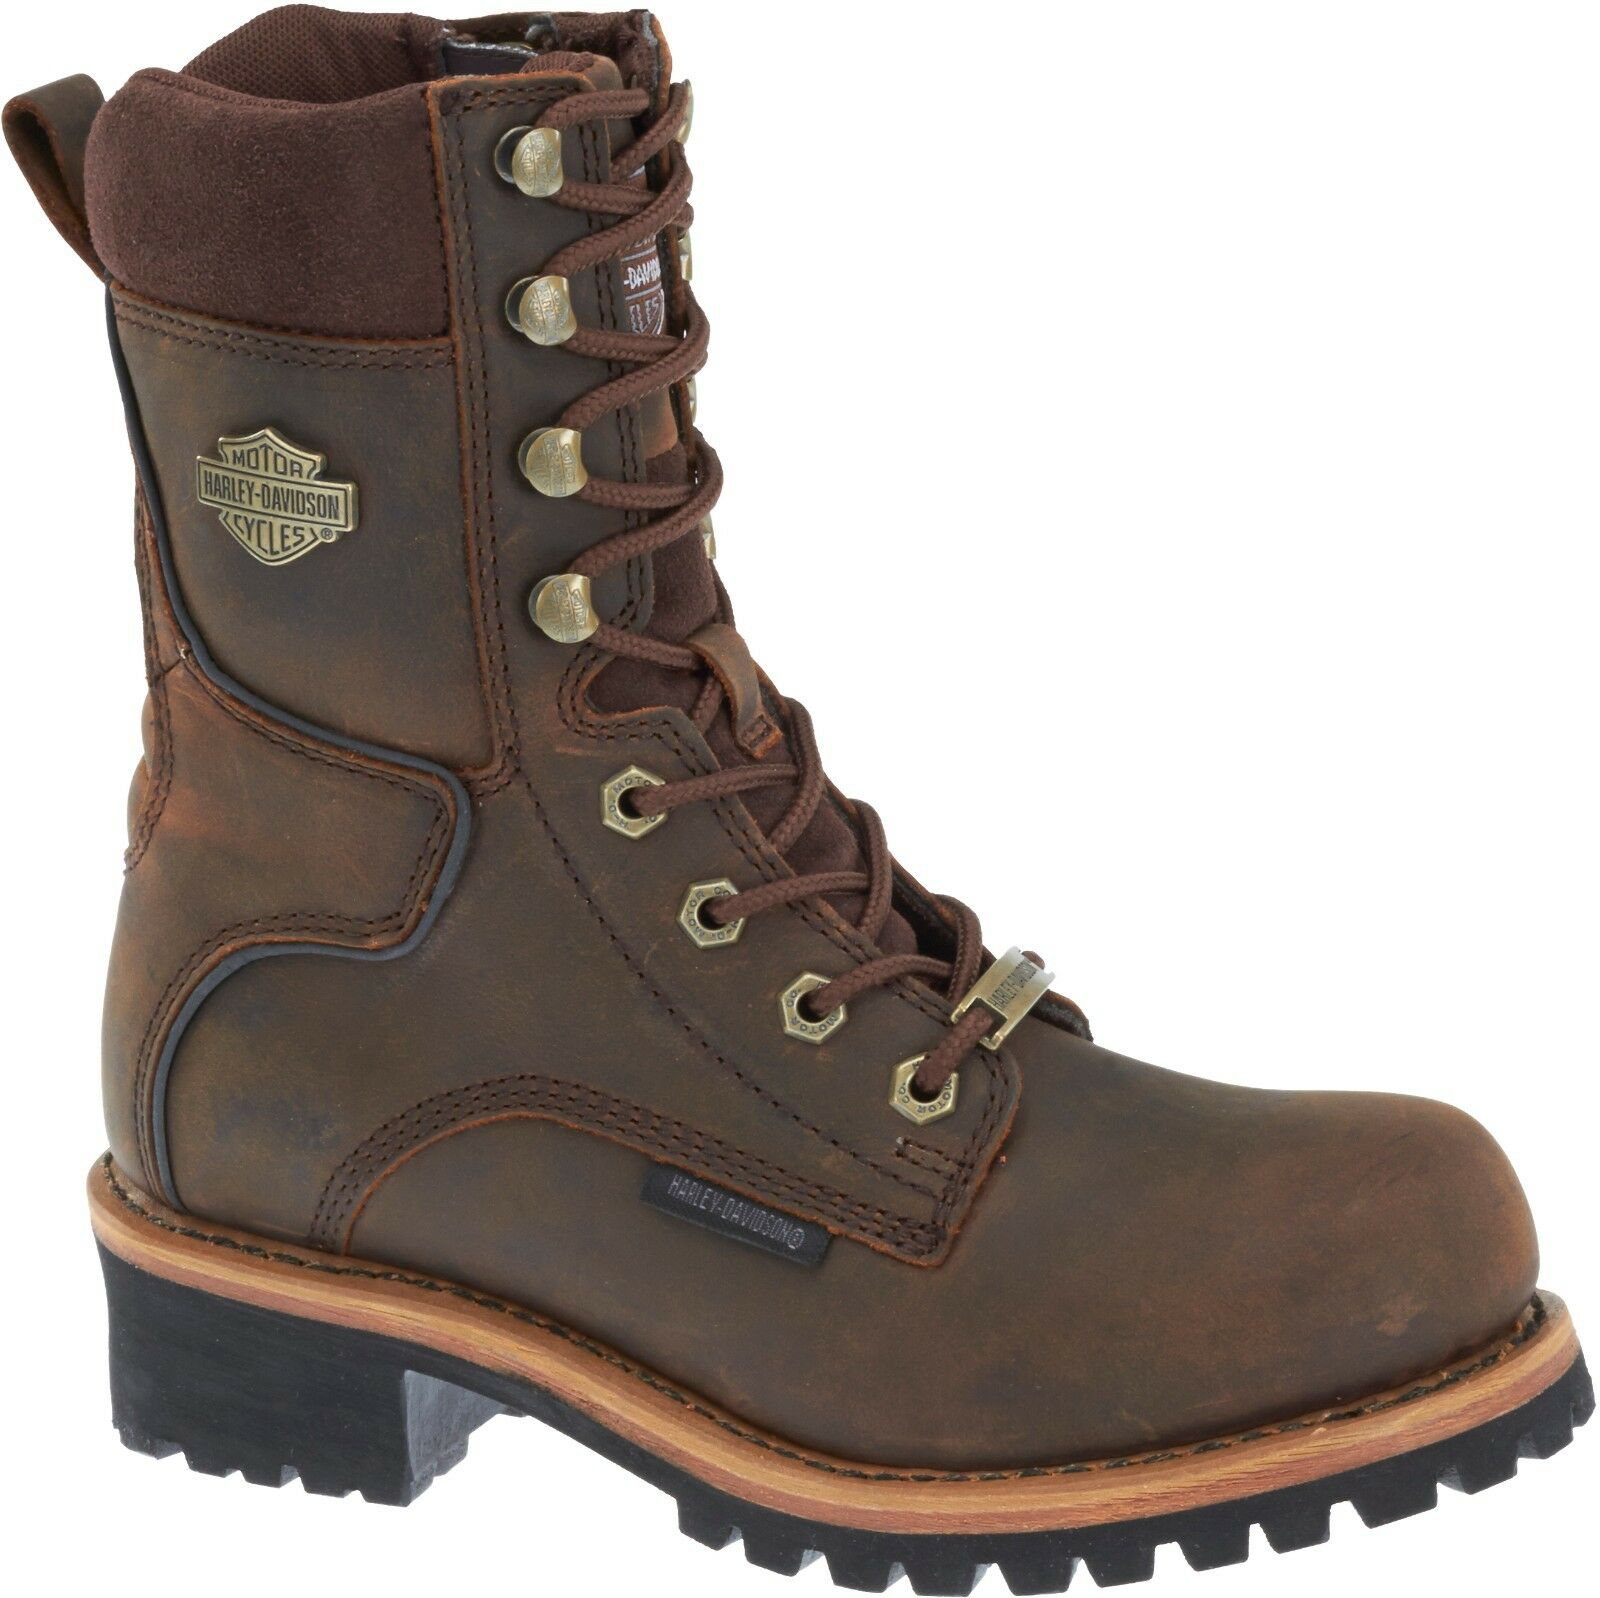 Harley-Davidson Women's Tyson Brown Leather Motorcycle Boot D87088